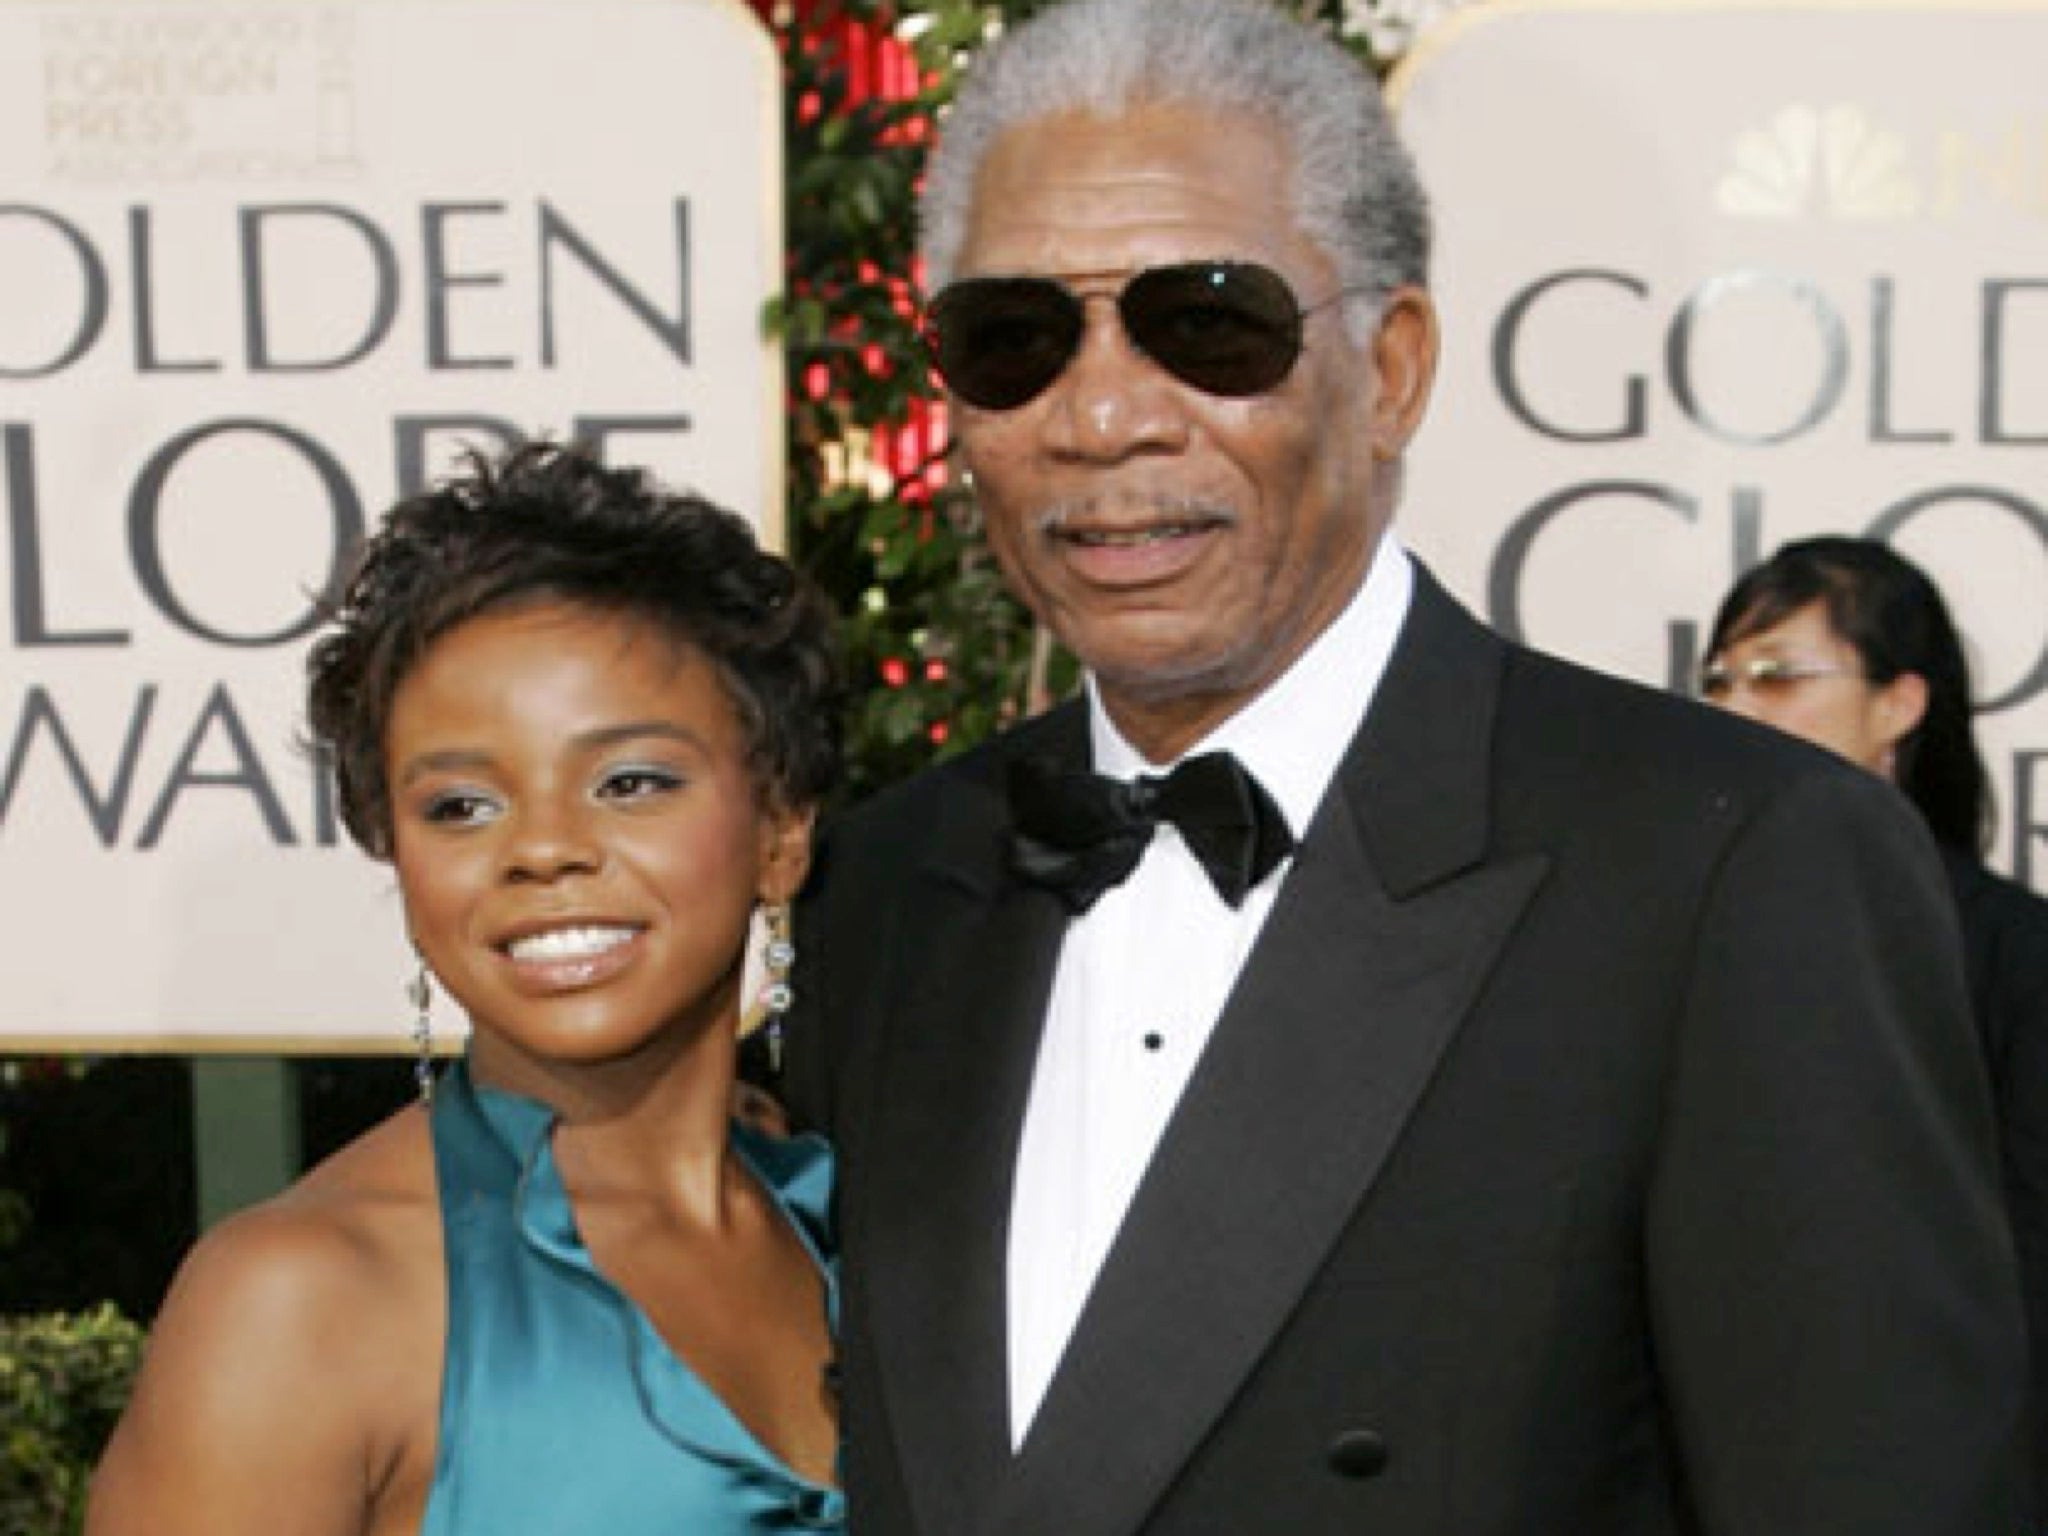 Morgan freeman dating granddaughter